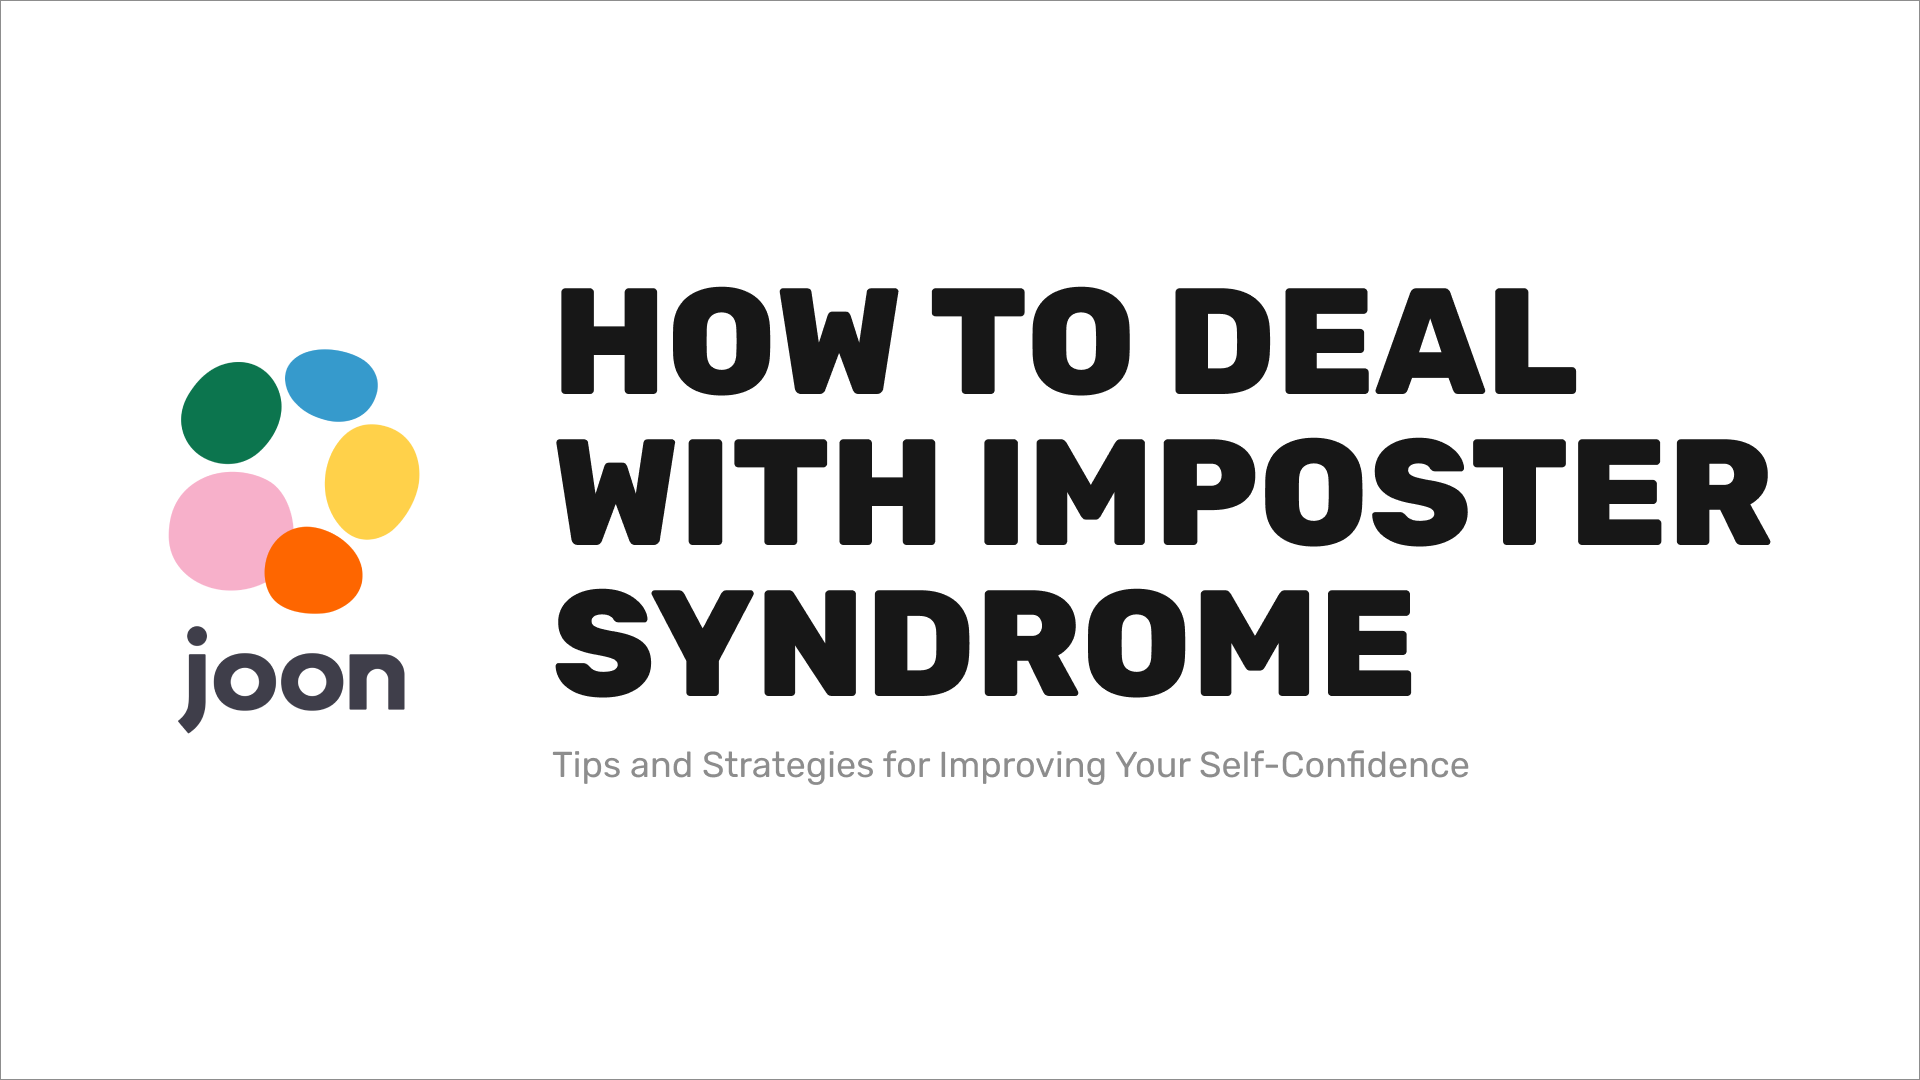 Imposter Syndrome: Tips and Strategies for Improving Your Self-Confidence